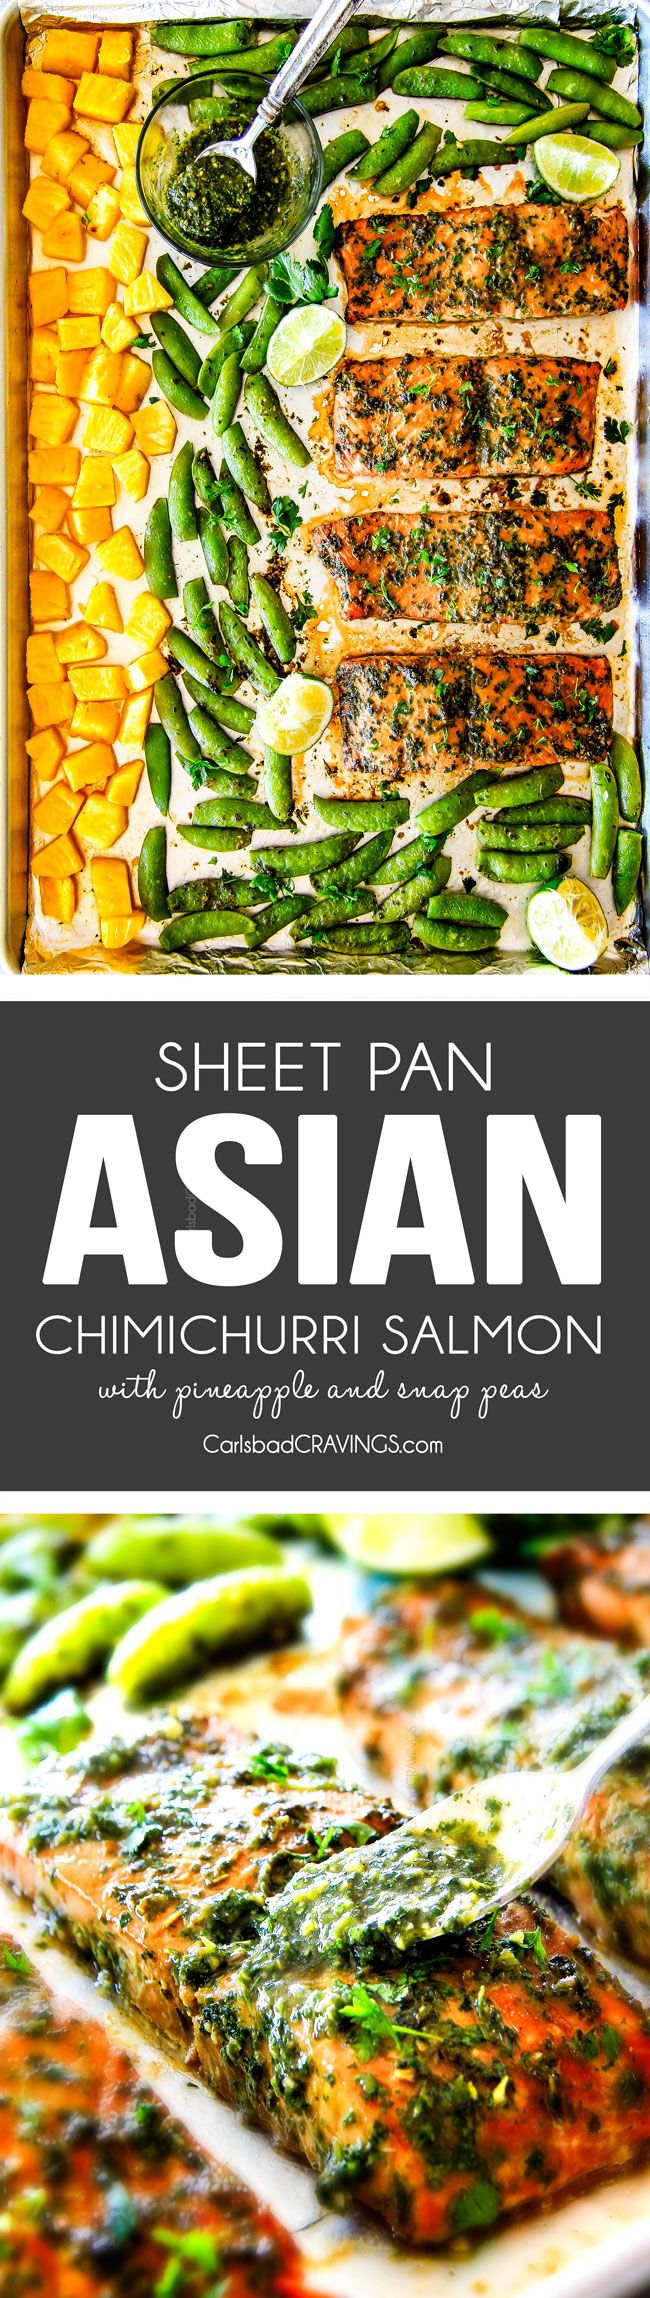 Easy SHEET PAN Asian Chimichurri Salmon is the most tender, flavorful salmon you will ever make - no joke! all cooked with pineapple and snap peas for a complete meal-in-one and the Cilantro Basil Chimichurri is out of this world! An easy, satisfying dinner that tastes totally gourmet!